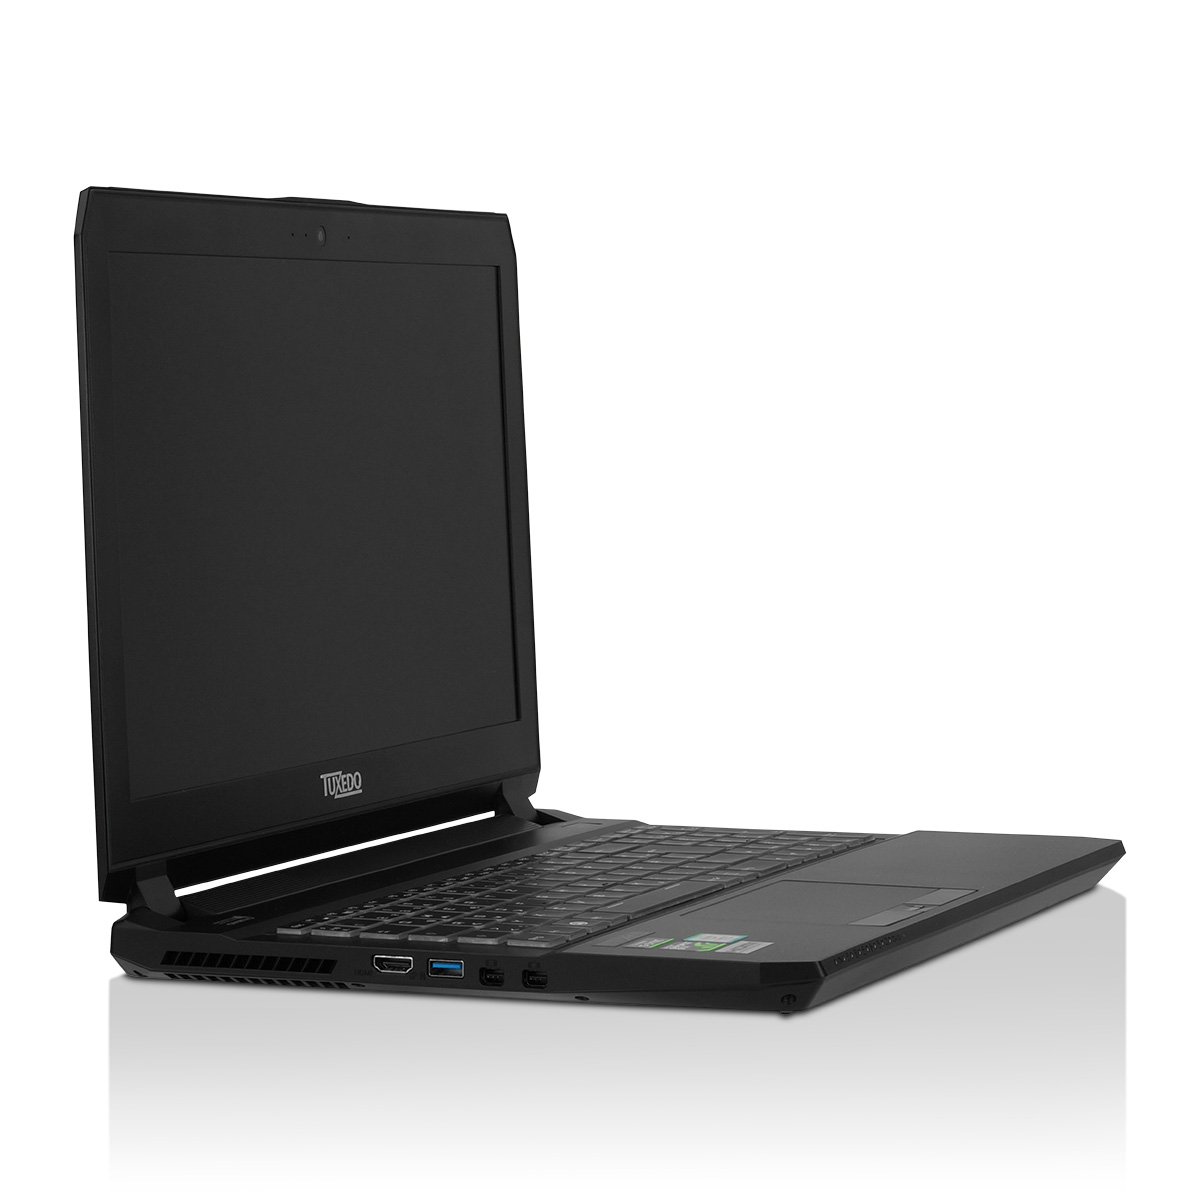 "TUXEDO Book XC1507 v2 - 15,6"" matt Full-HD & Ultra-HD IPS-Display + bis NVIDIA GeForce GTX 1070 Grafik + bis vier HDD o. SSD + Intel Core i7 Quad-Core + bis 64GB RAM"